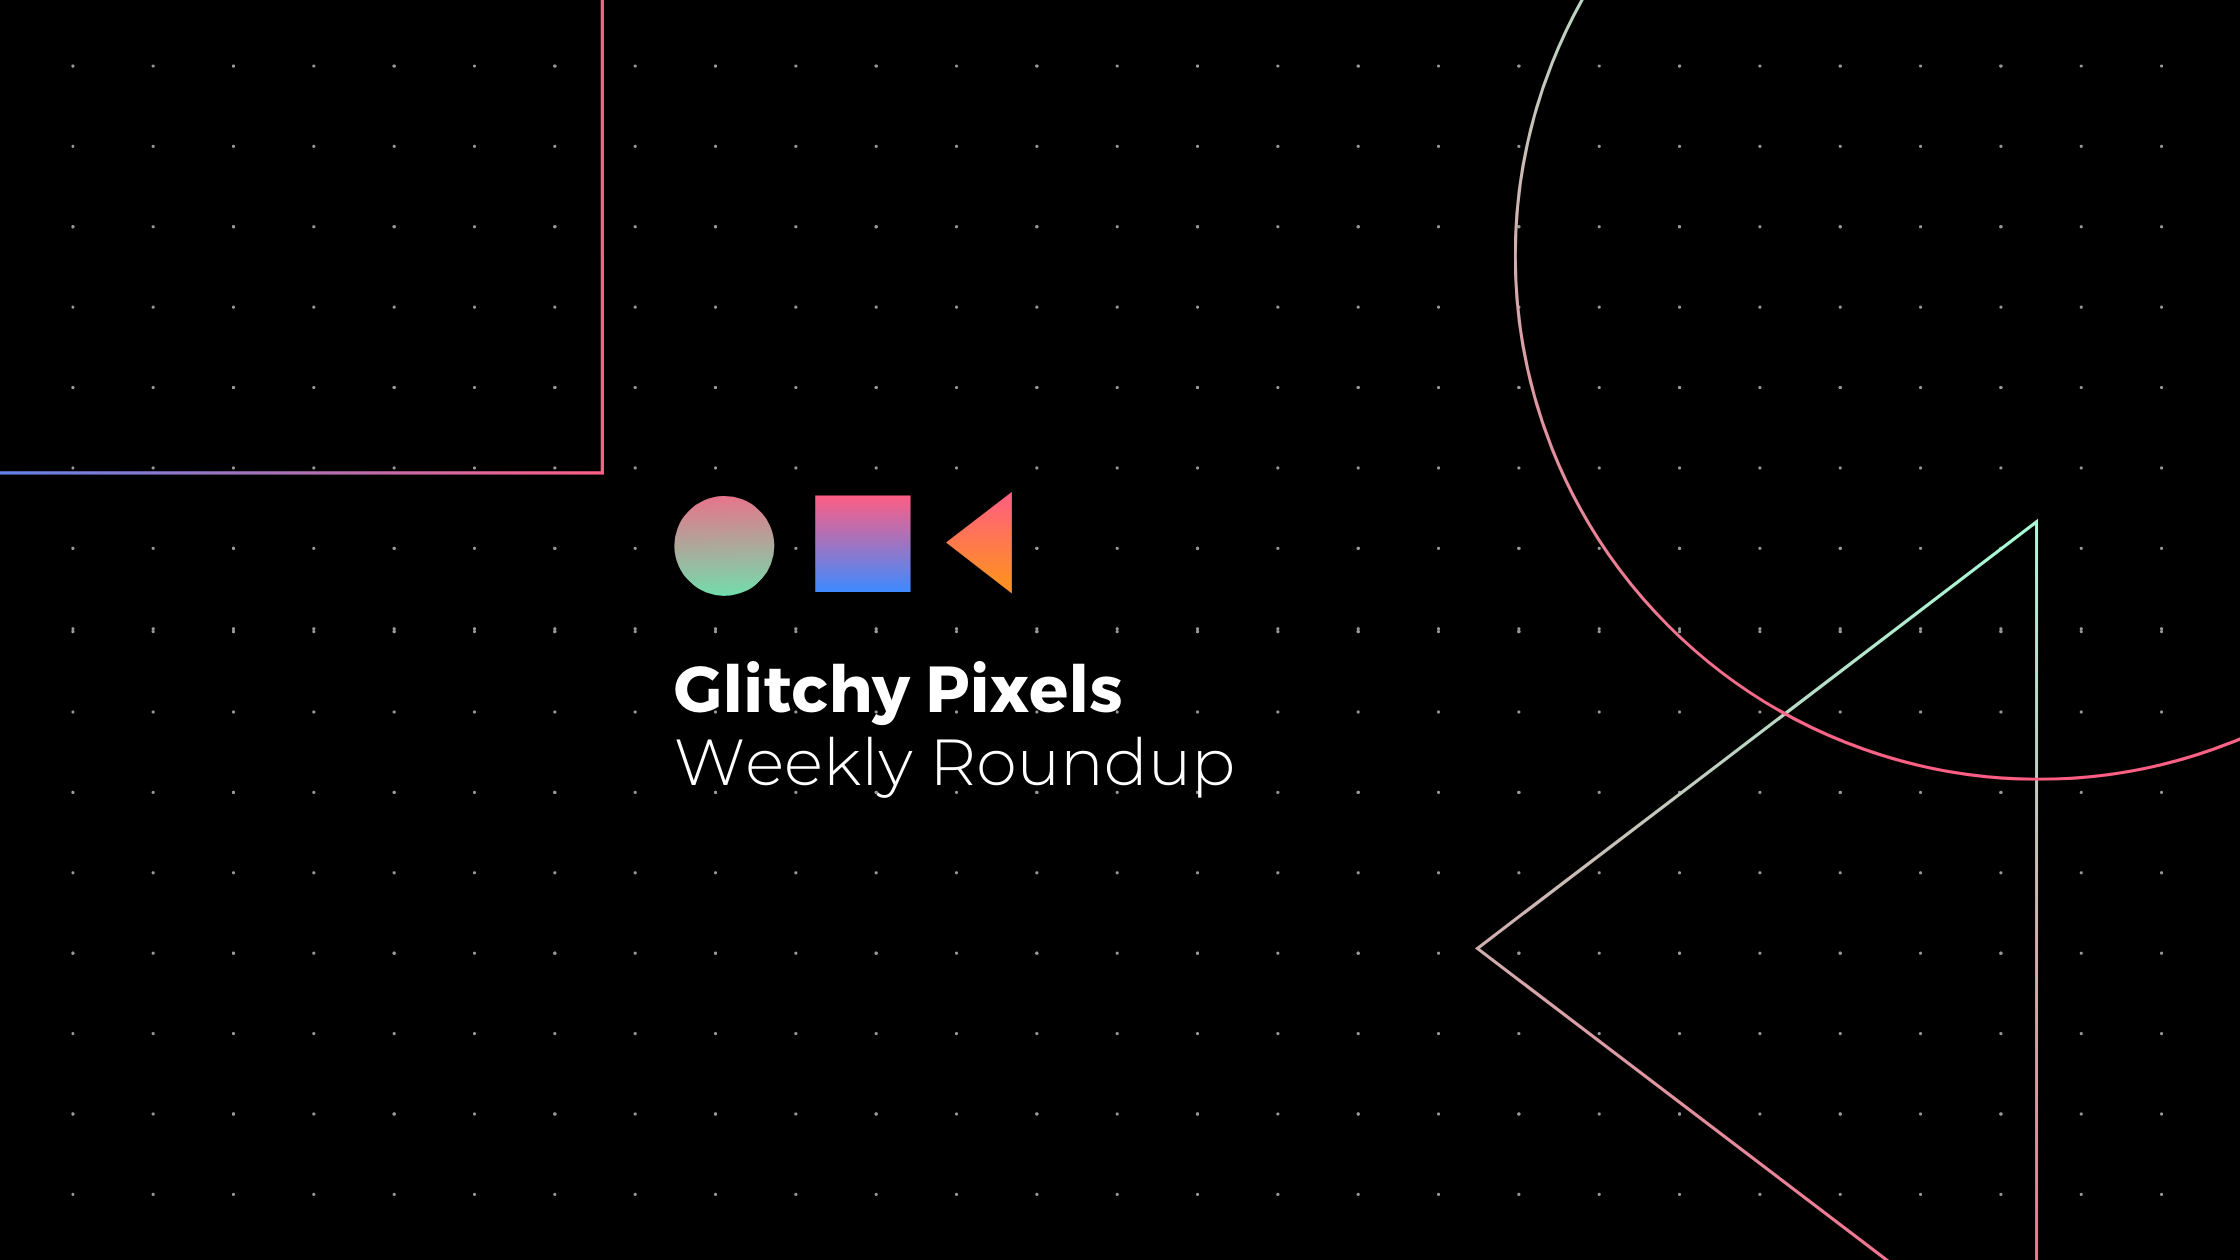 Glitchy Pixels Weekly Roundup